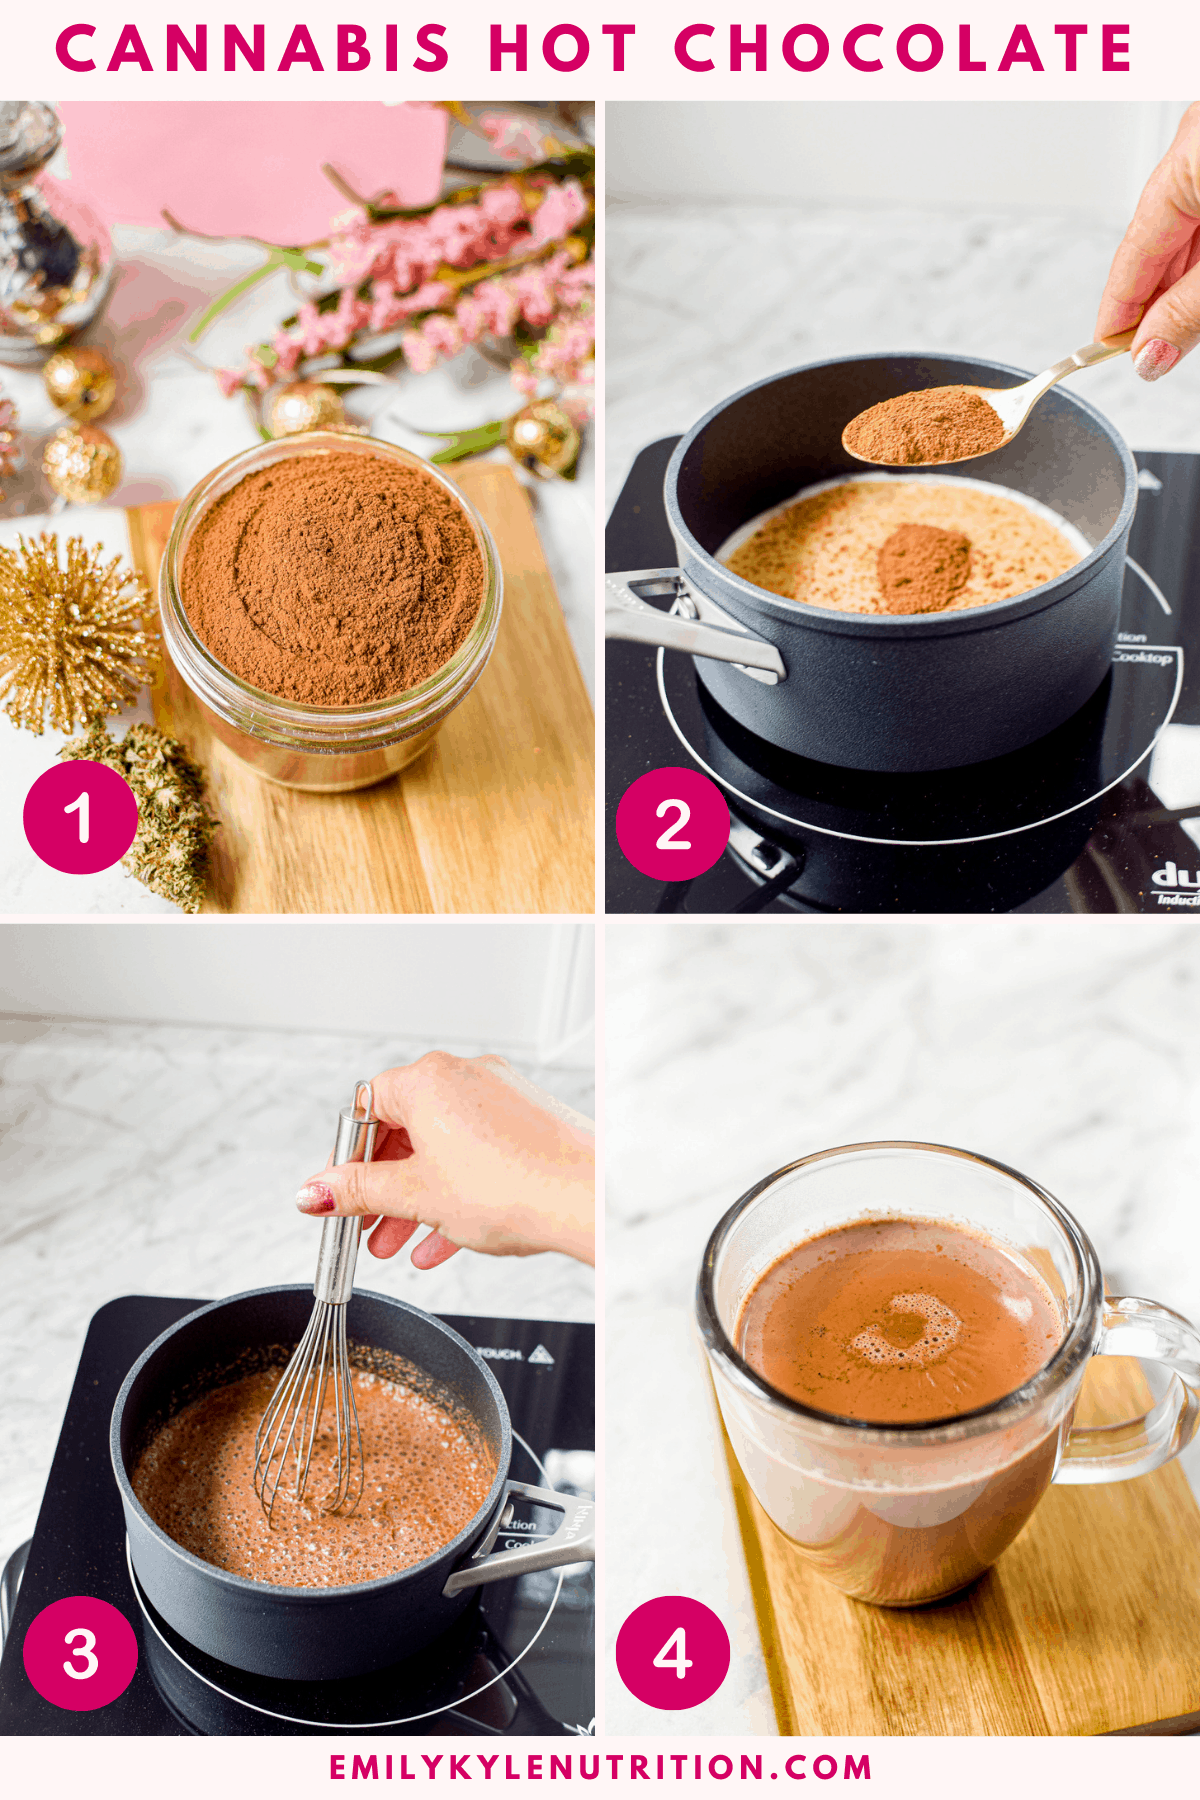 A 4-image collage showing how to make cannabis hot chocolate including the mix, adding the mix to milk in a saucepan over medium heat, whisking well, and the cocoa in a clear mug for the final shot